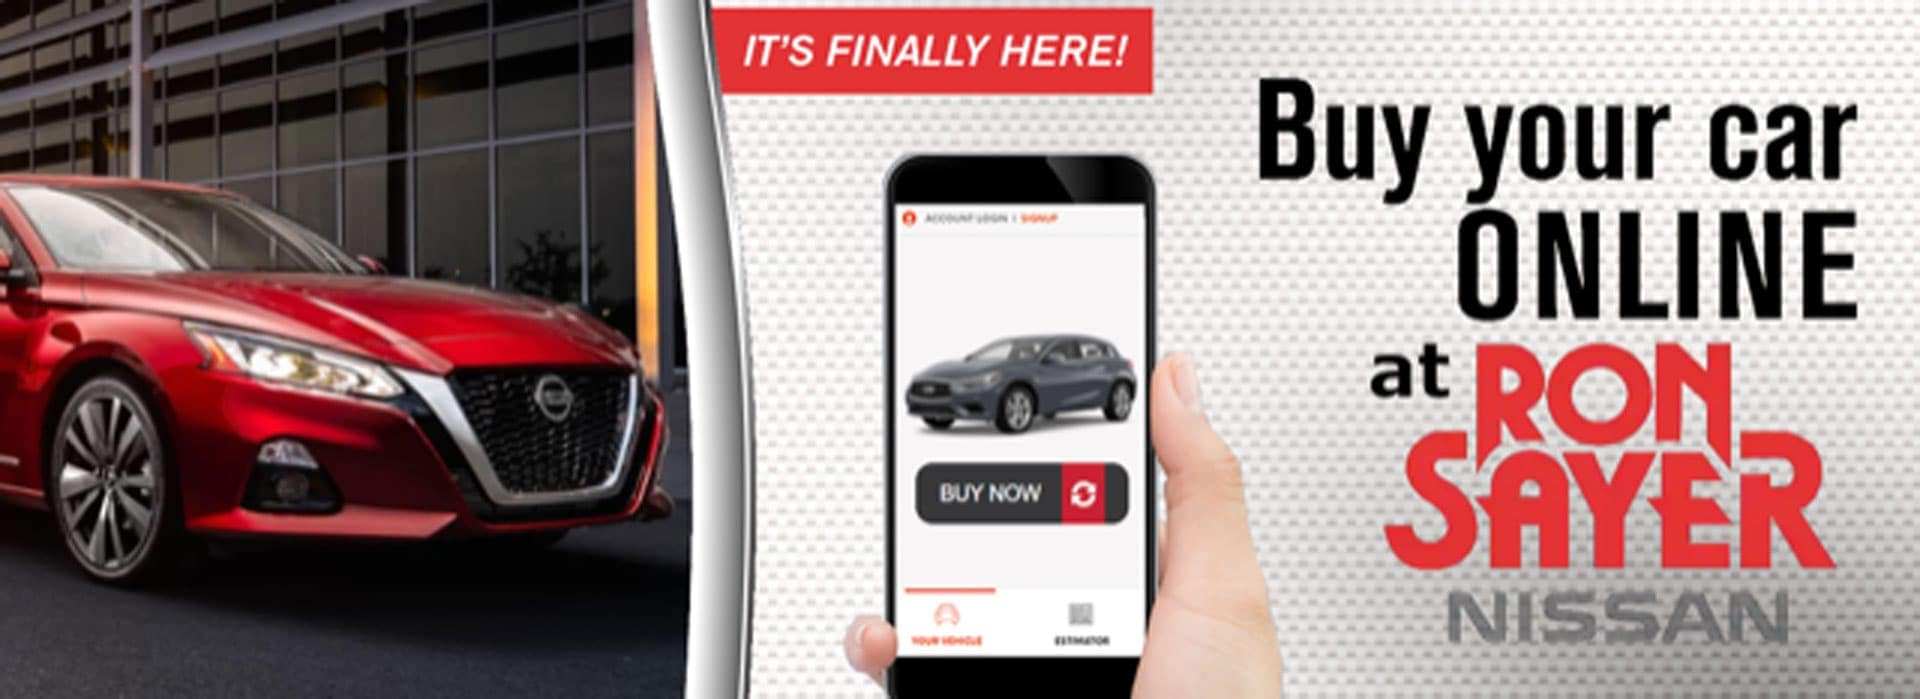 Buy your car online at Ron Sayer Nissan